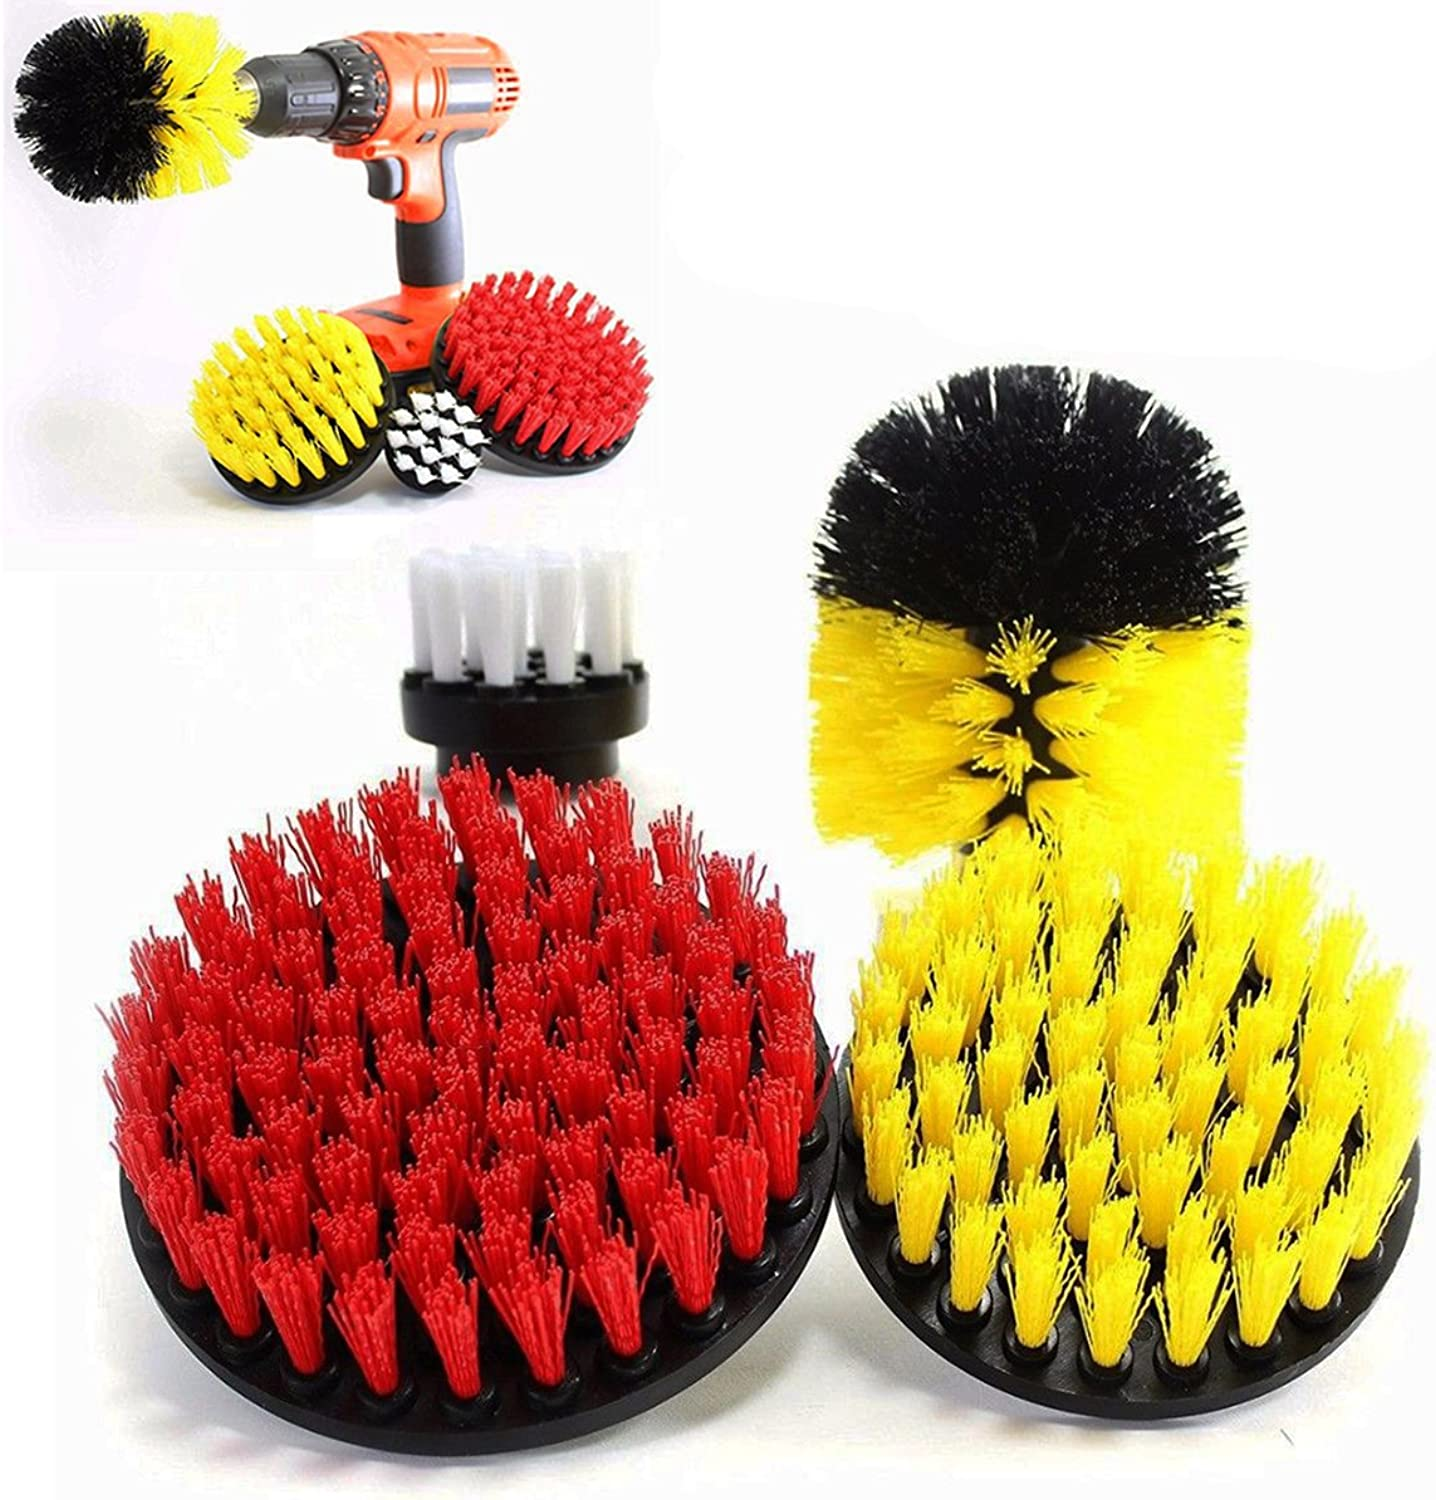 4pcs Power Scrub Drill Cleaning Brush Set 25 Inch Electric Drill Cleaning Brush